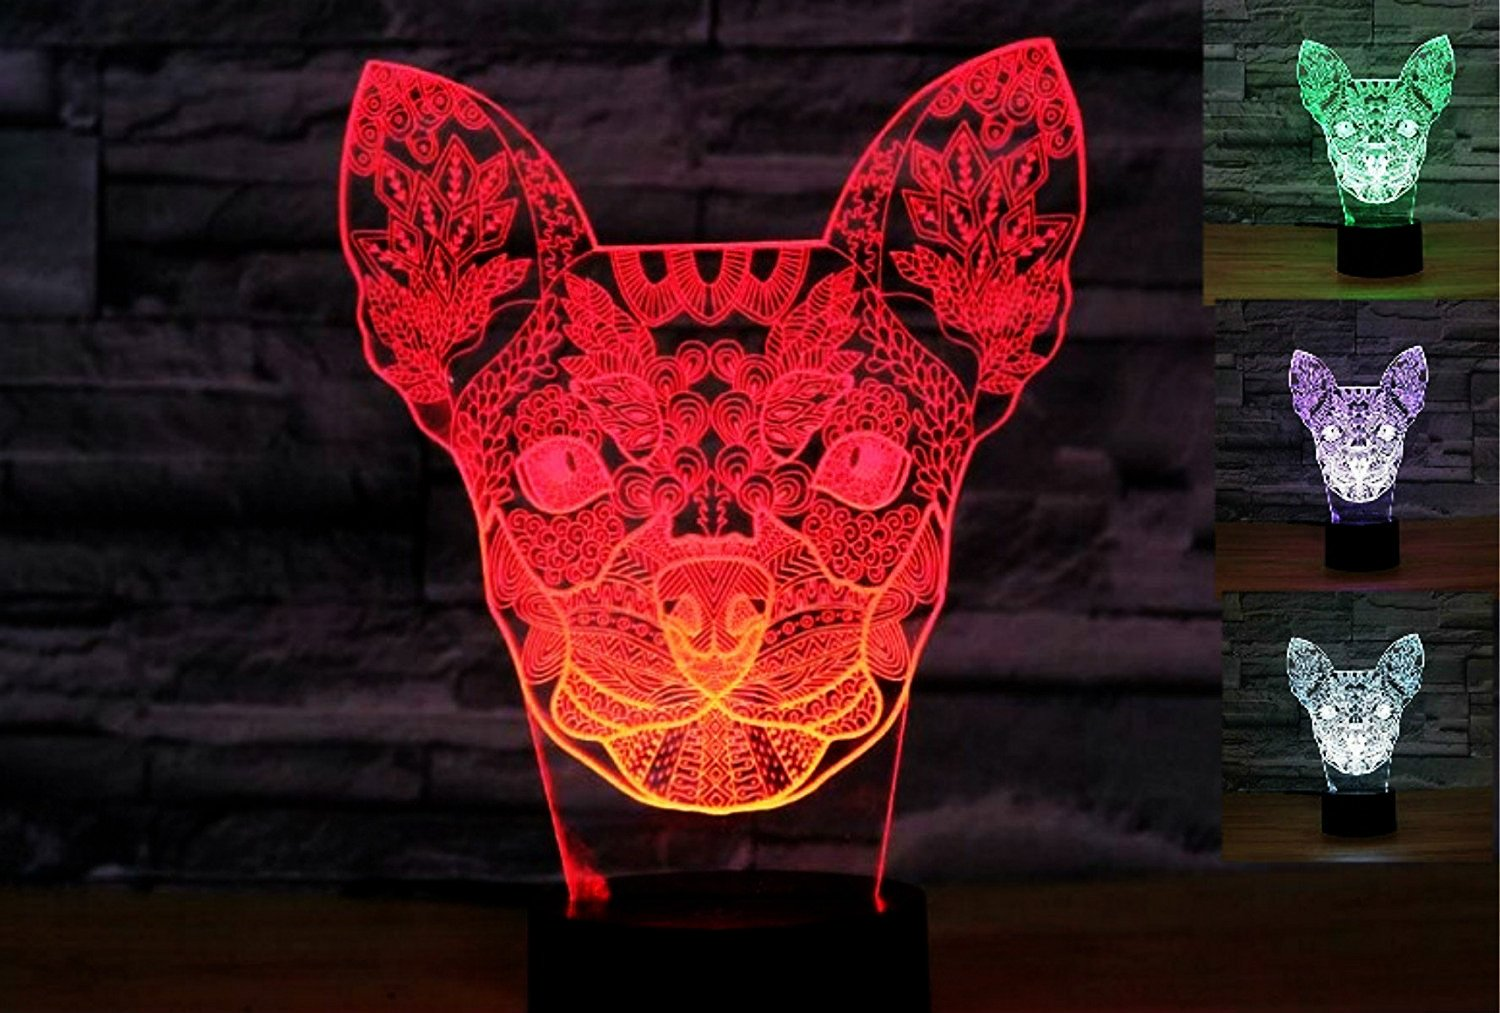 3D Chihuahua Dog Night Light Puppy 3D Dog Night Lights Table Lamp Decor Table Desk Optical Illusion Lamps 7 Color Changing Lights LED Table Lamp Xmas Home Love Brithday Children Kids Decor Toy Gift